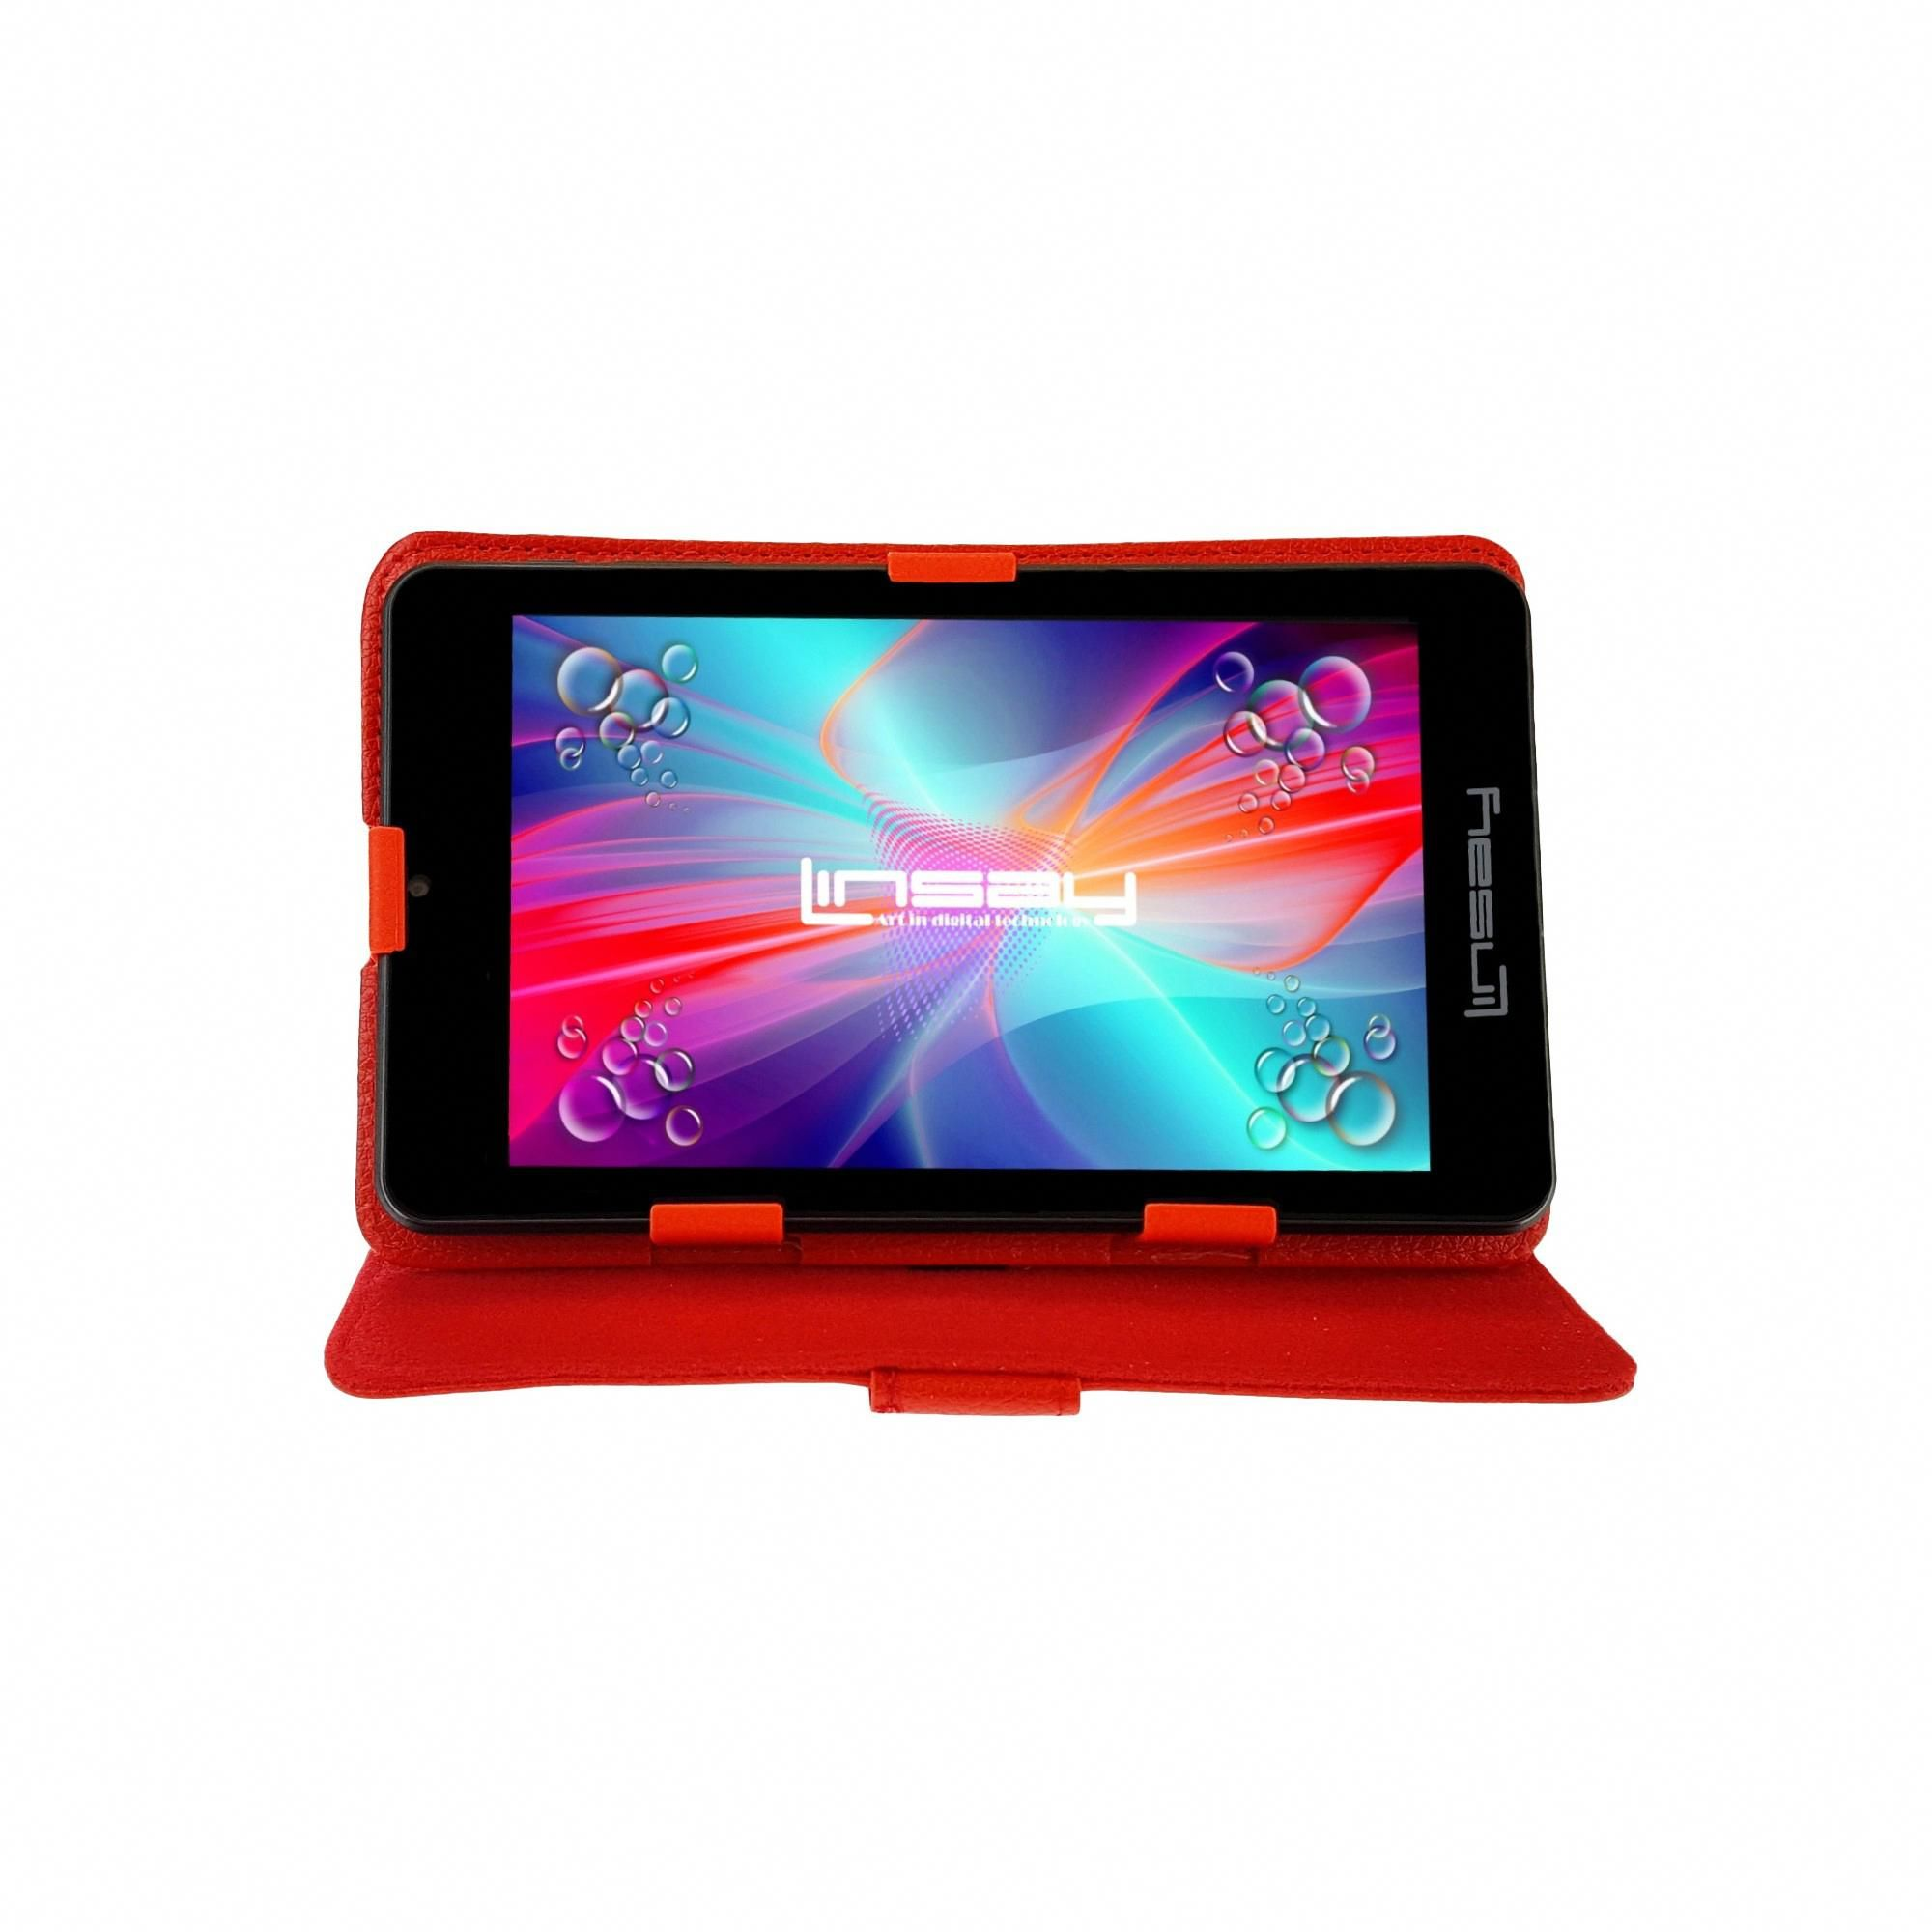 Linsay 7 HD Quad Core Android Tablet Bundle with Leather